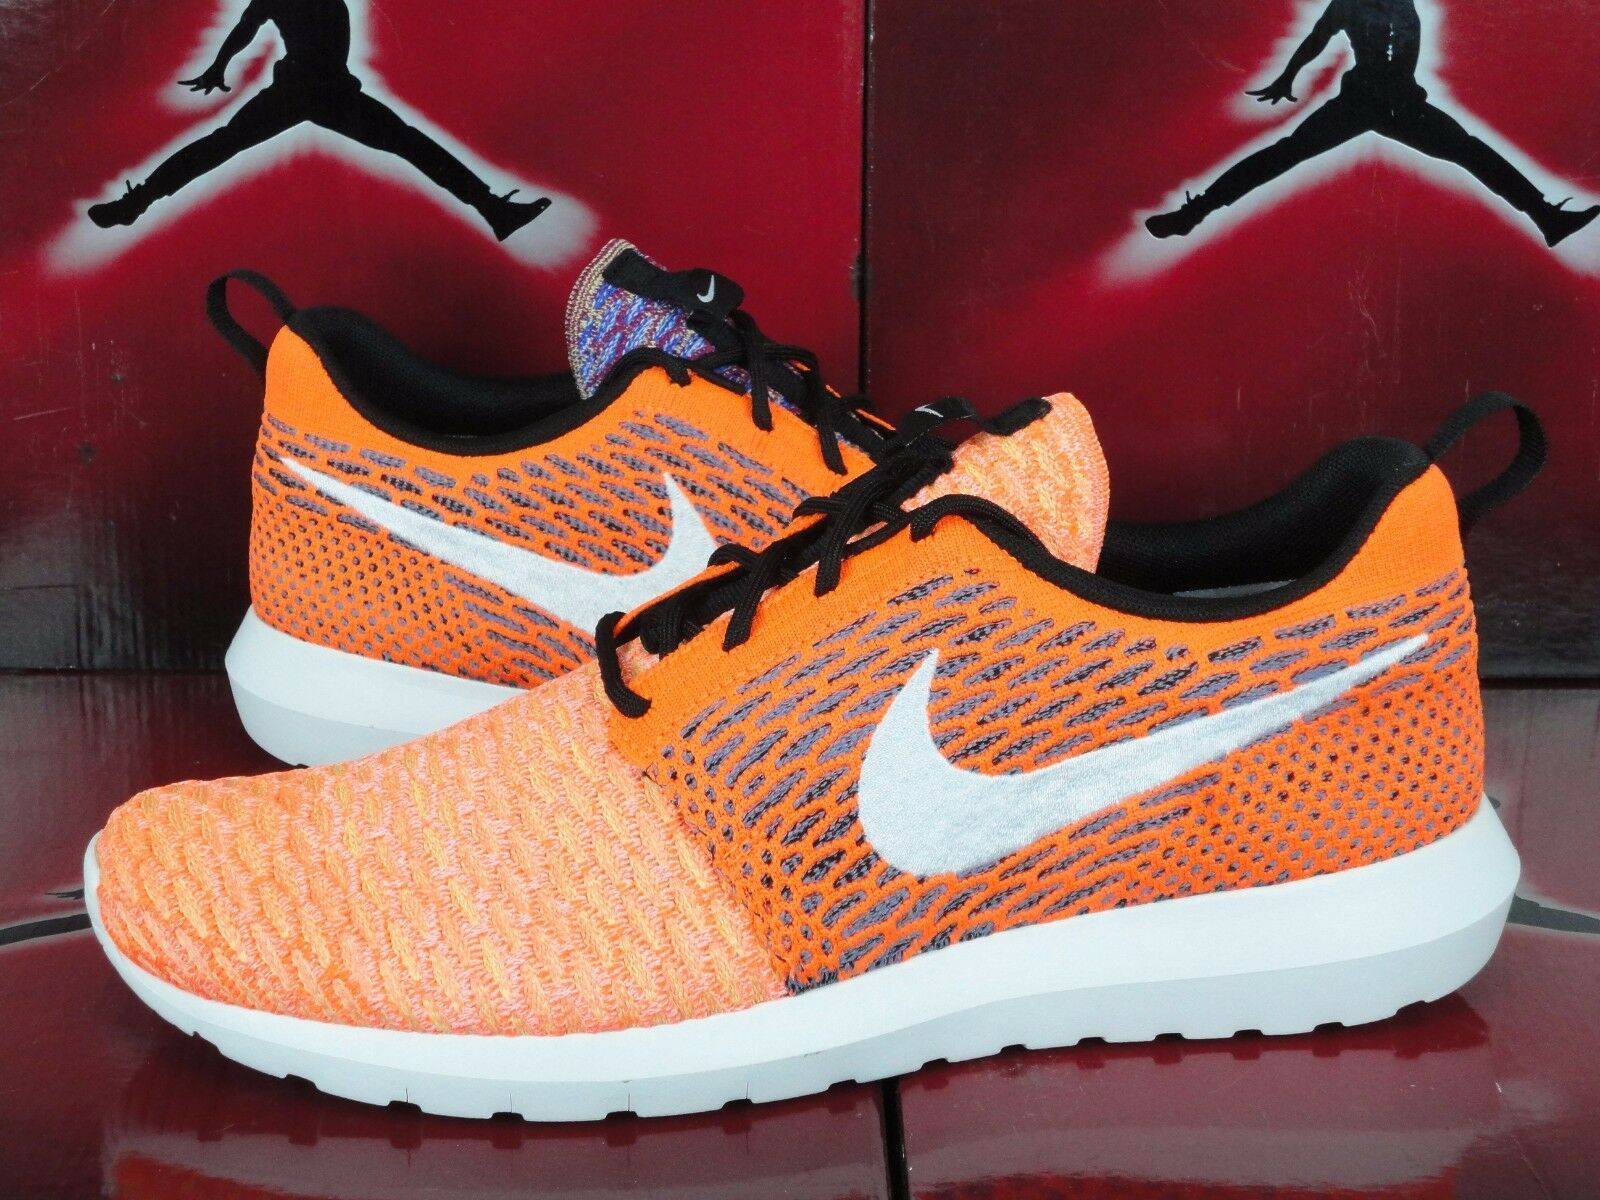 get cheap d40d4 b2ec4 lovely NEW NIKE ROSHE RUN NM RANDOM YARN MULTI-COLOR FLYKNIT 677243-100  MEN S